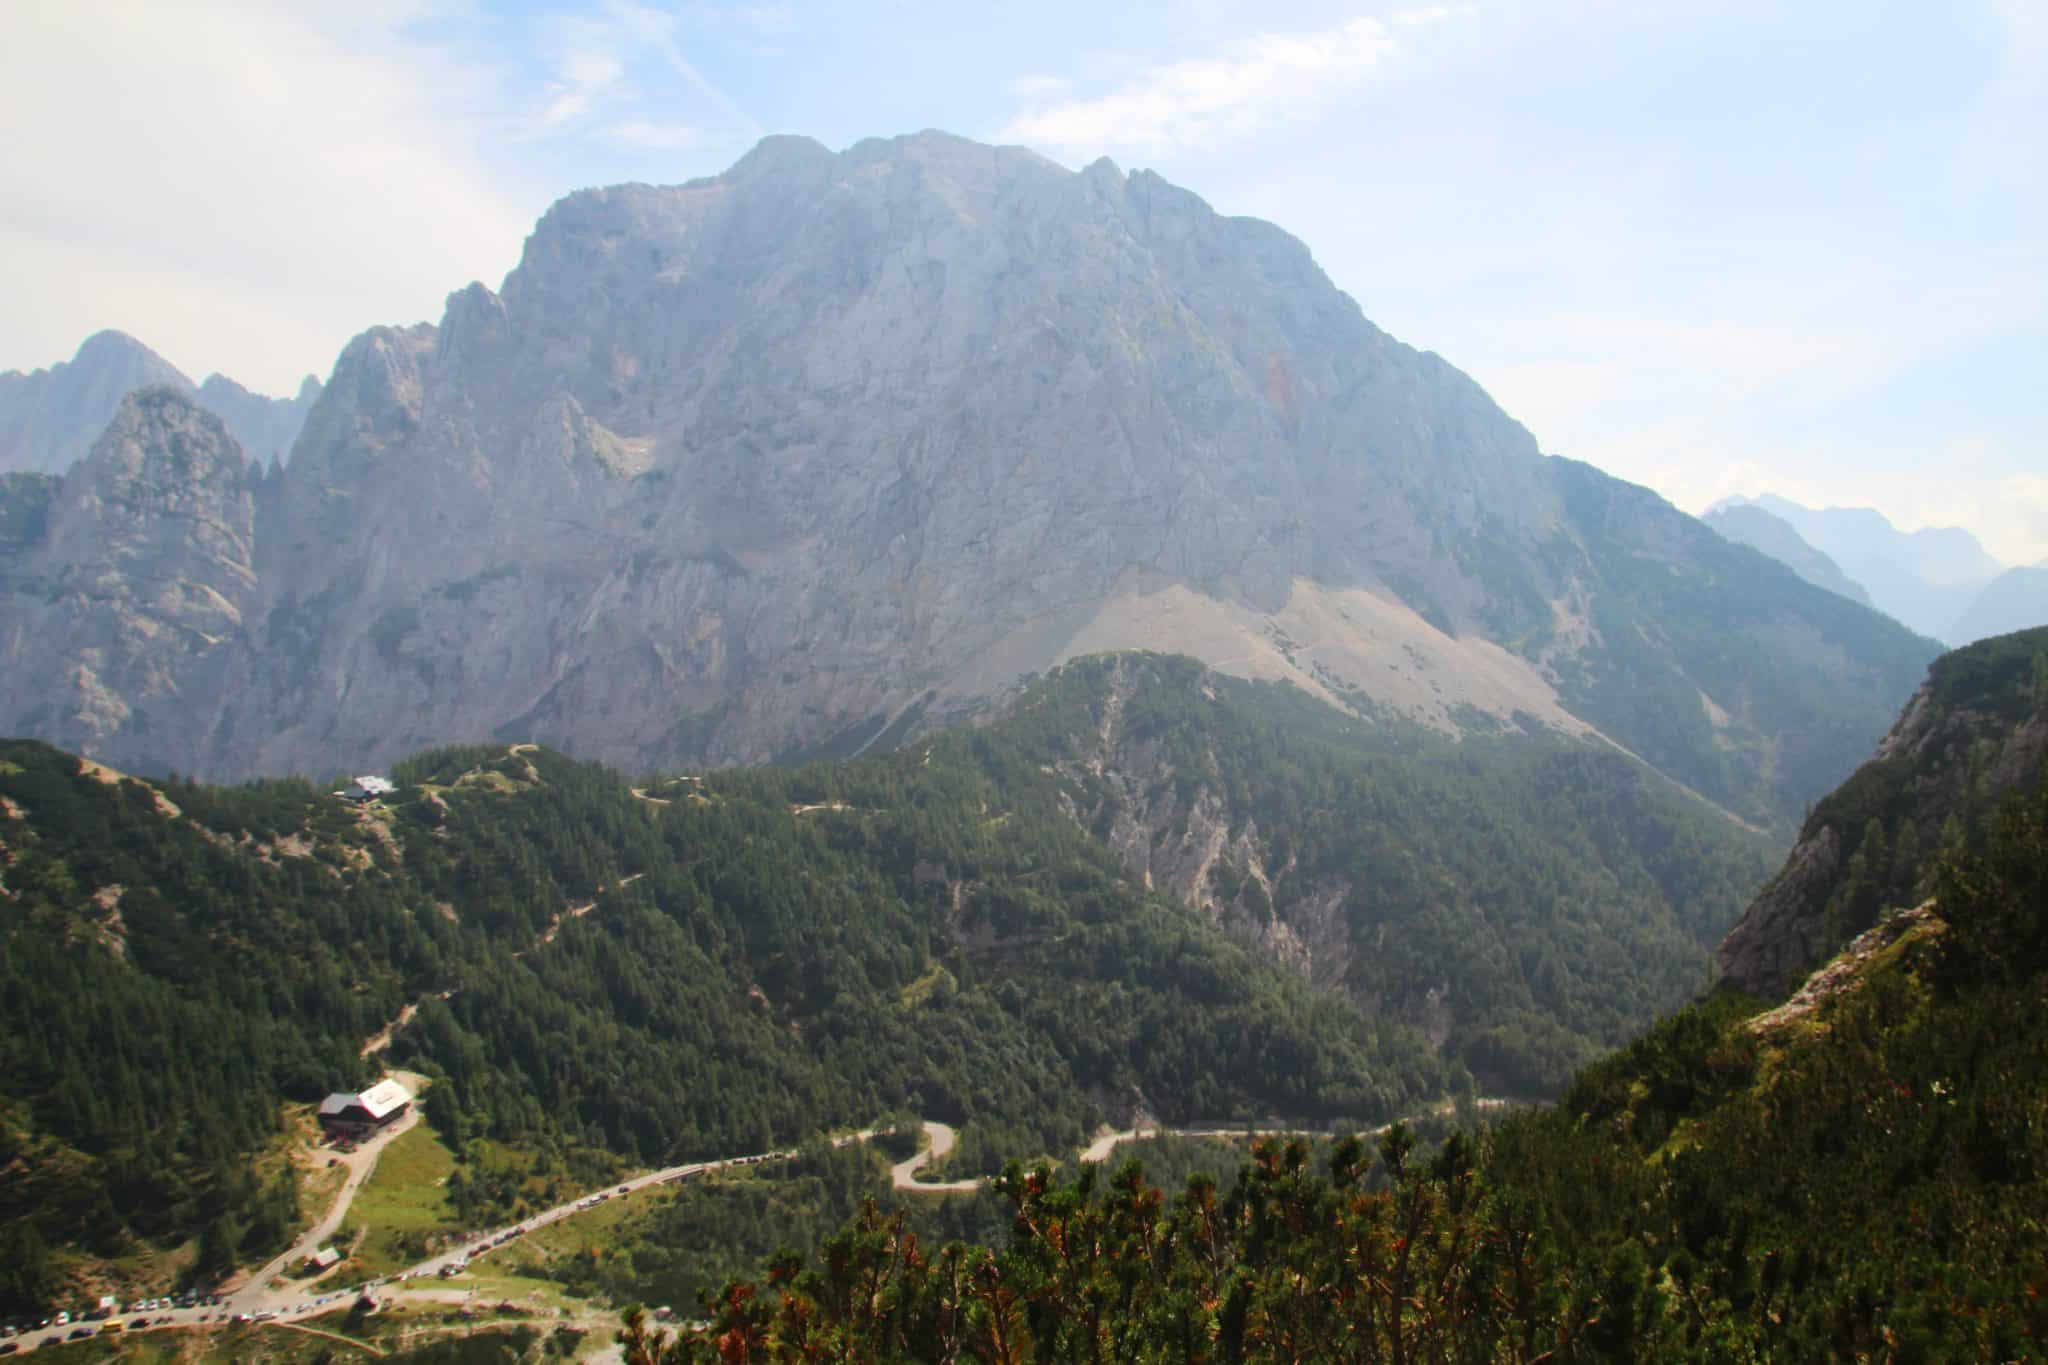 Vrsic pass in Slovenia